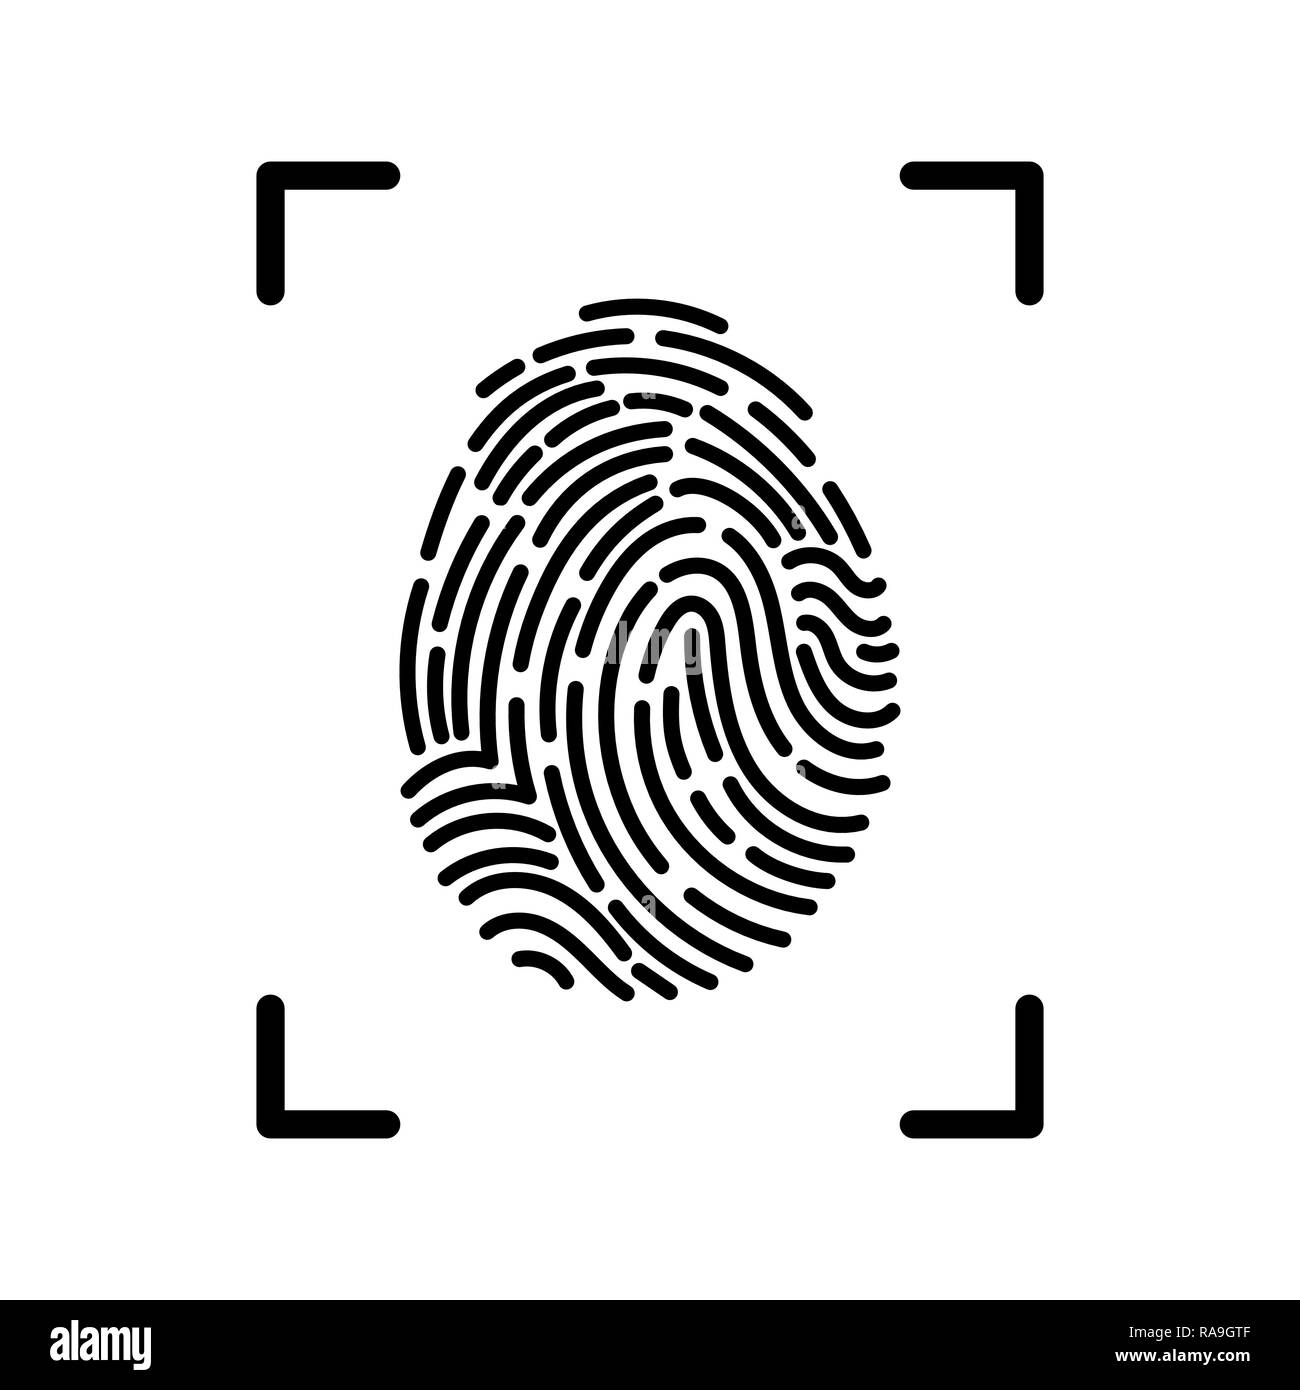 Editable Vector line Fingerprint Scan Icon - fingerprint identification symbol - Stock Image